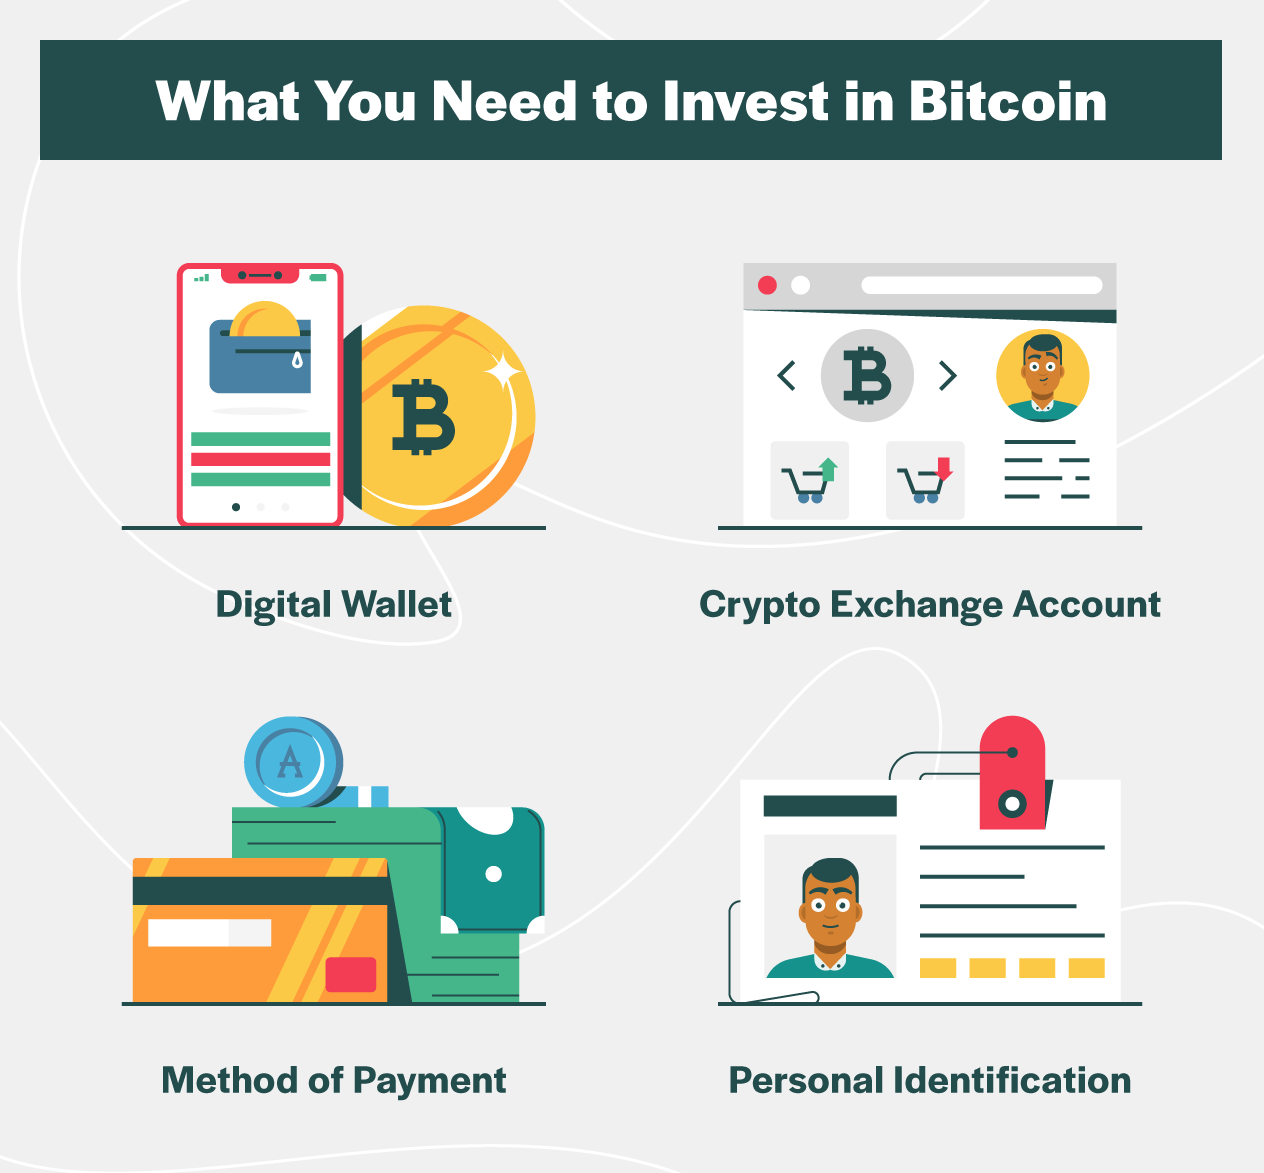 what you need to invest in bitcoin@2x